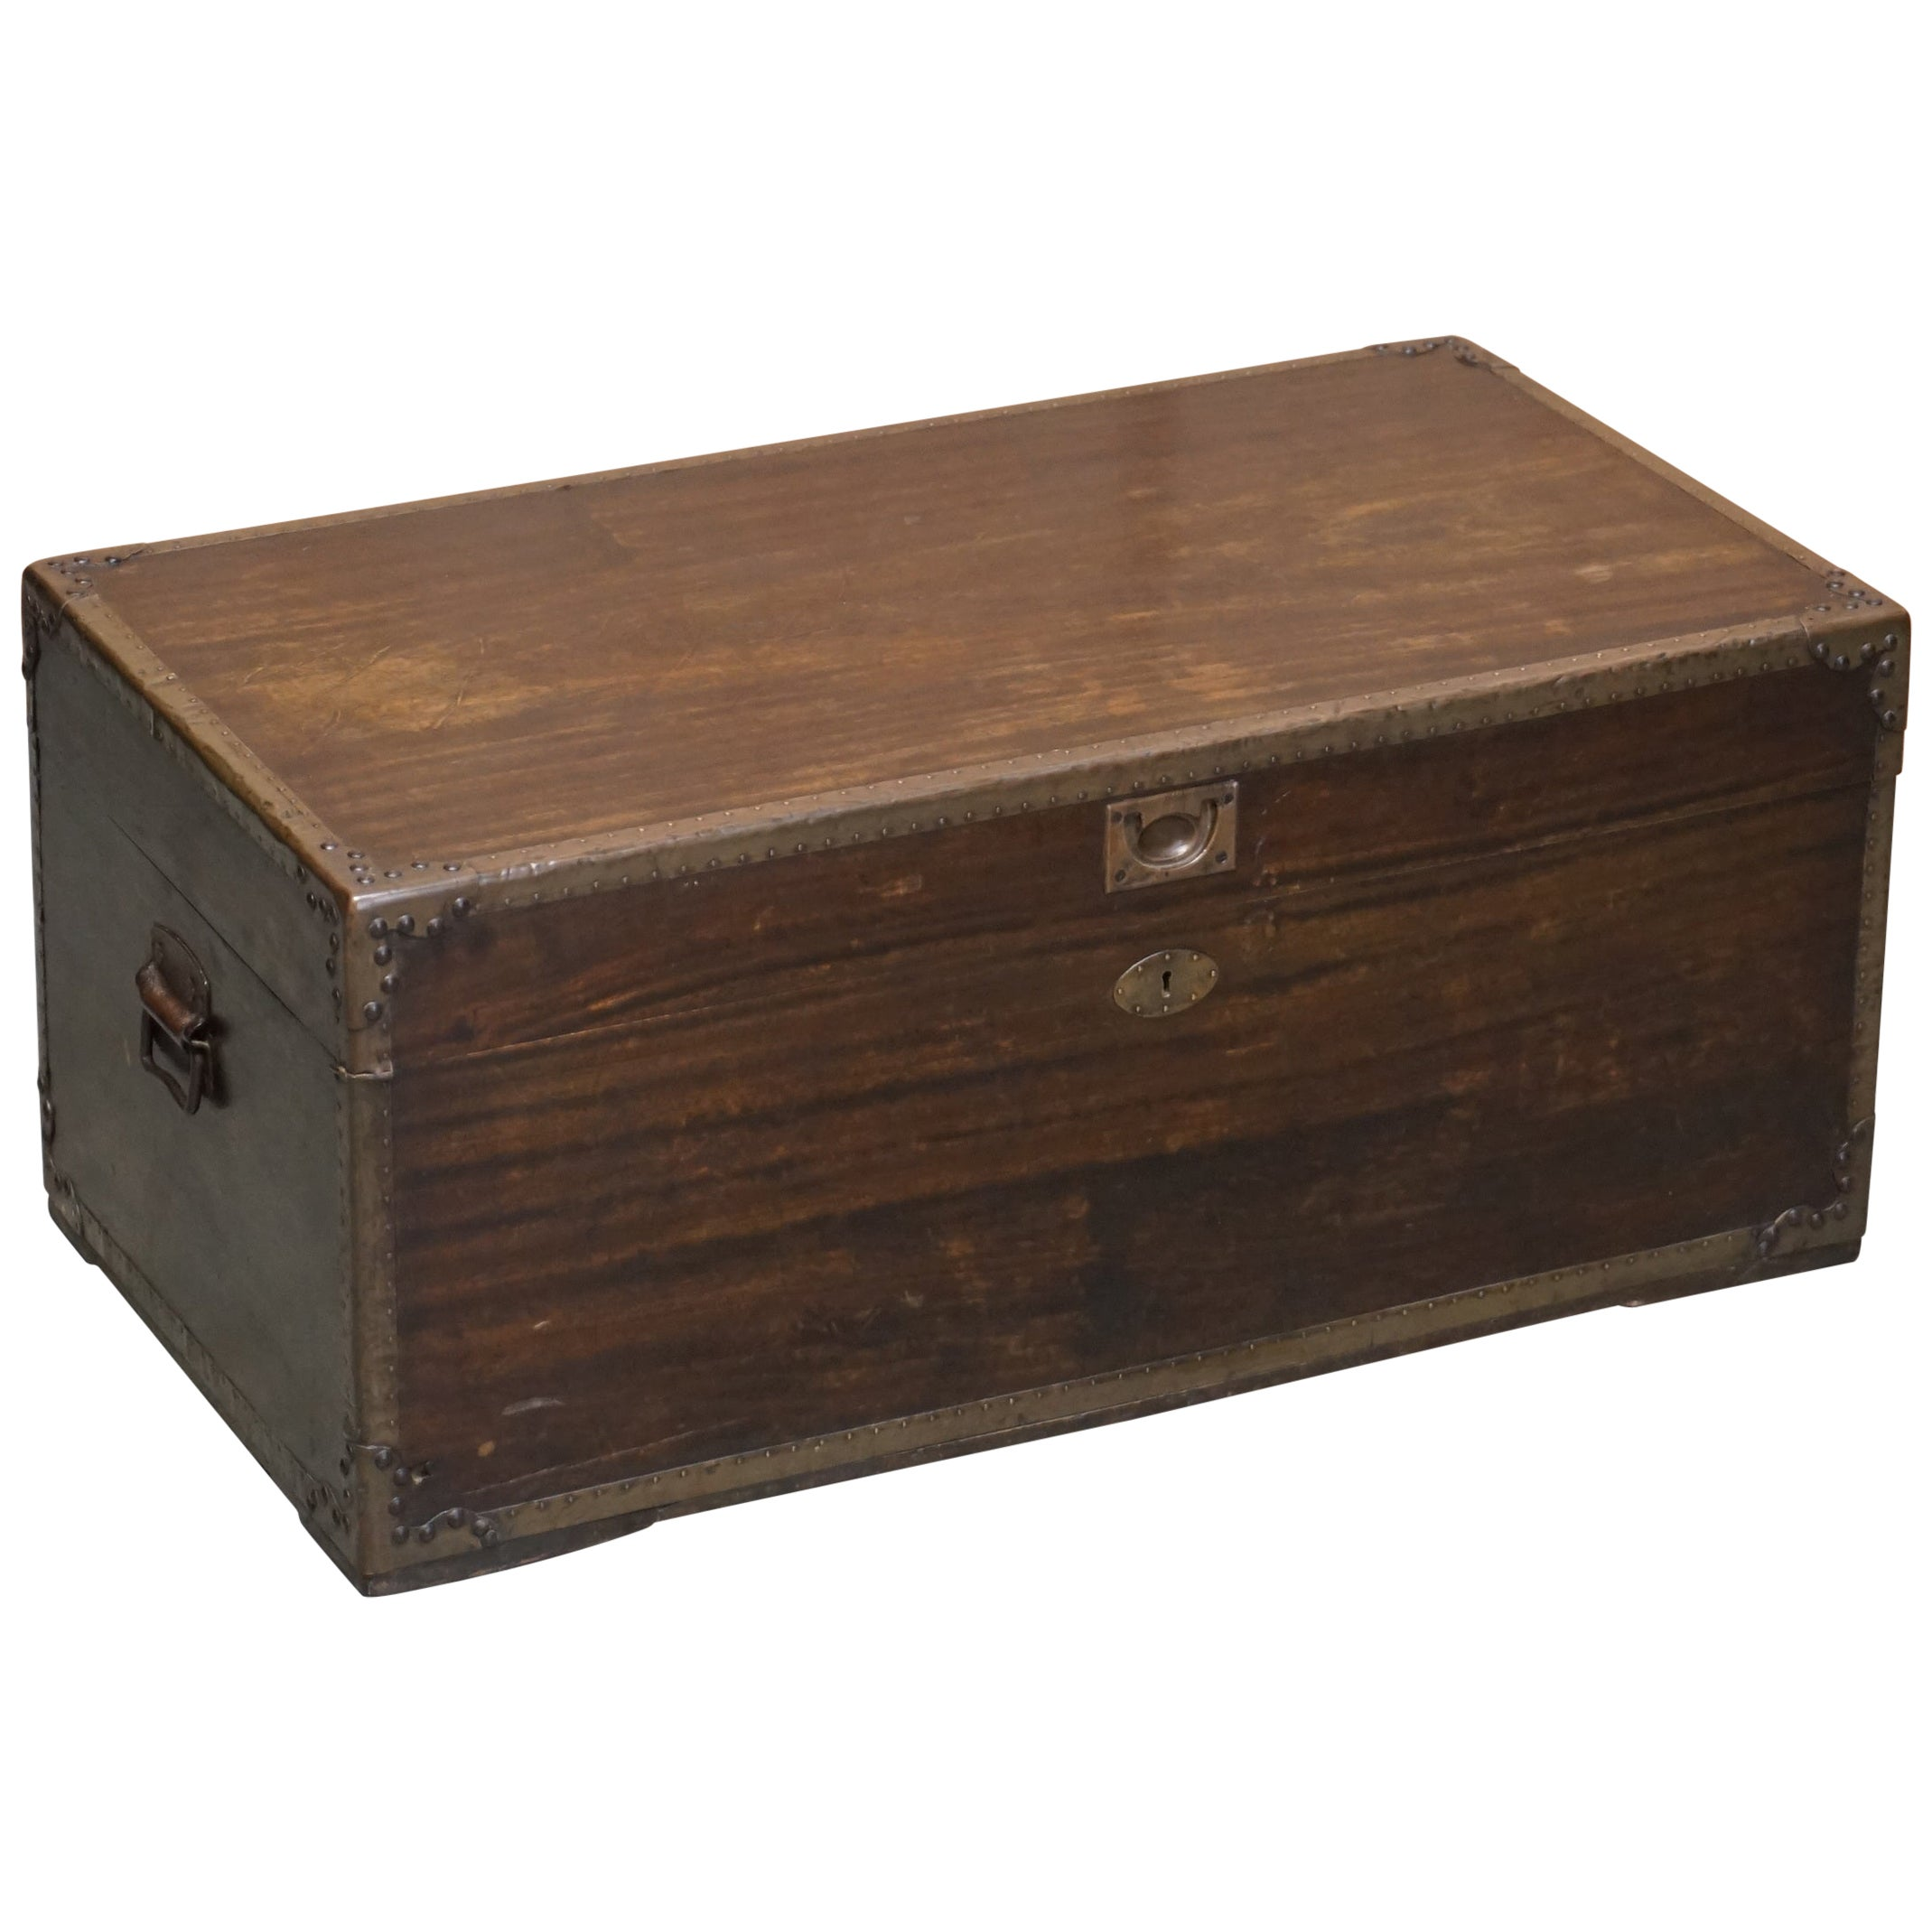 Anglo-Indian Military Campaign Chest Trunk Ottoman Used Coffee Table, circa 1880